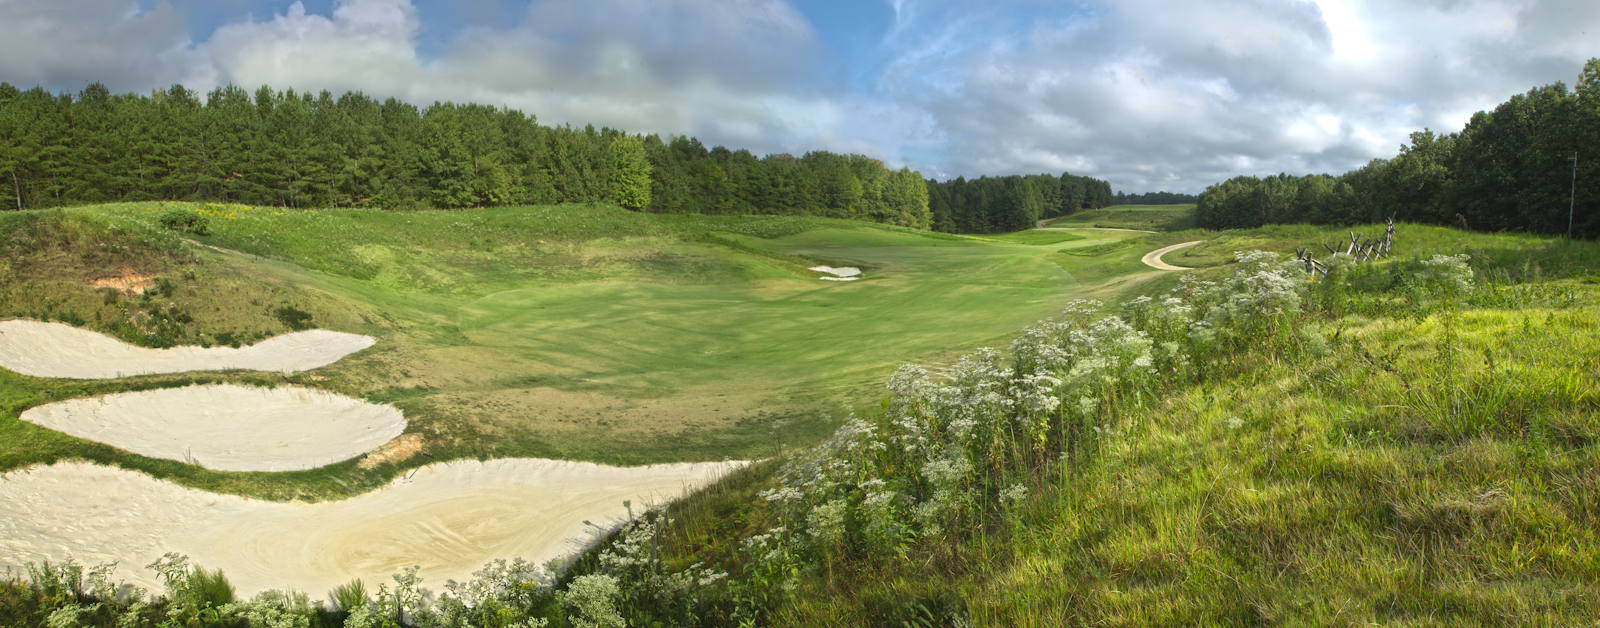 Royal_New_Kent_Gof_Club-Course_by_Terri_Aigner-28-of-74